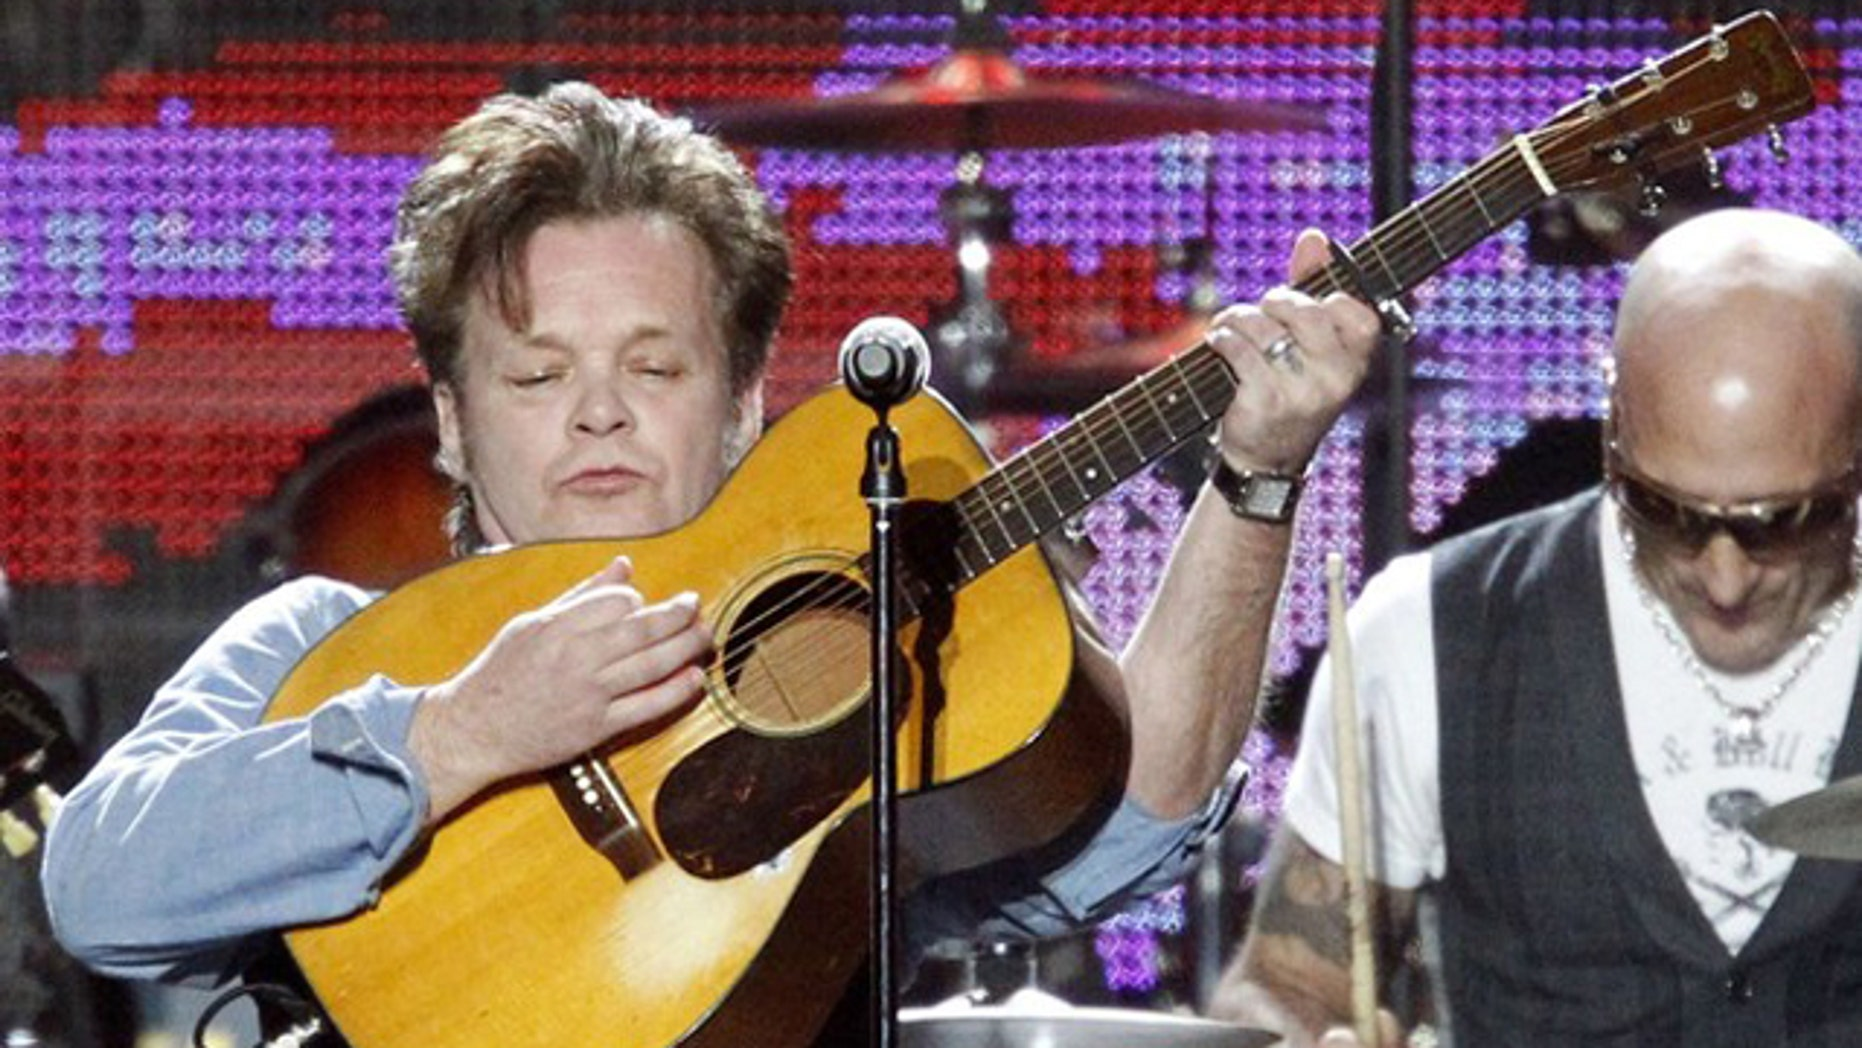 """Singer John Mellencamp performs """"Down By The River"""" at the 2010 MusiCares Person of the Year tribute honoring recording artist Neil Young in Los Angeles January 29, 2010."""